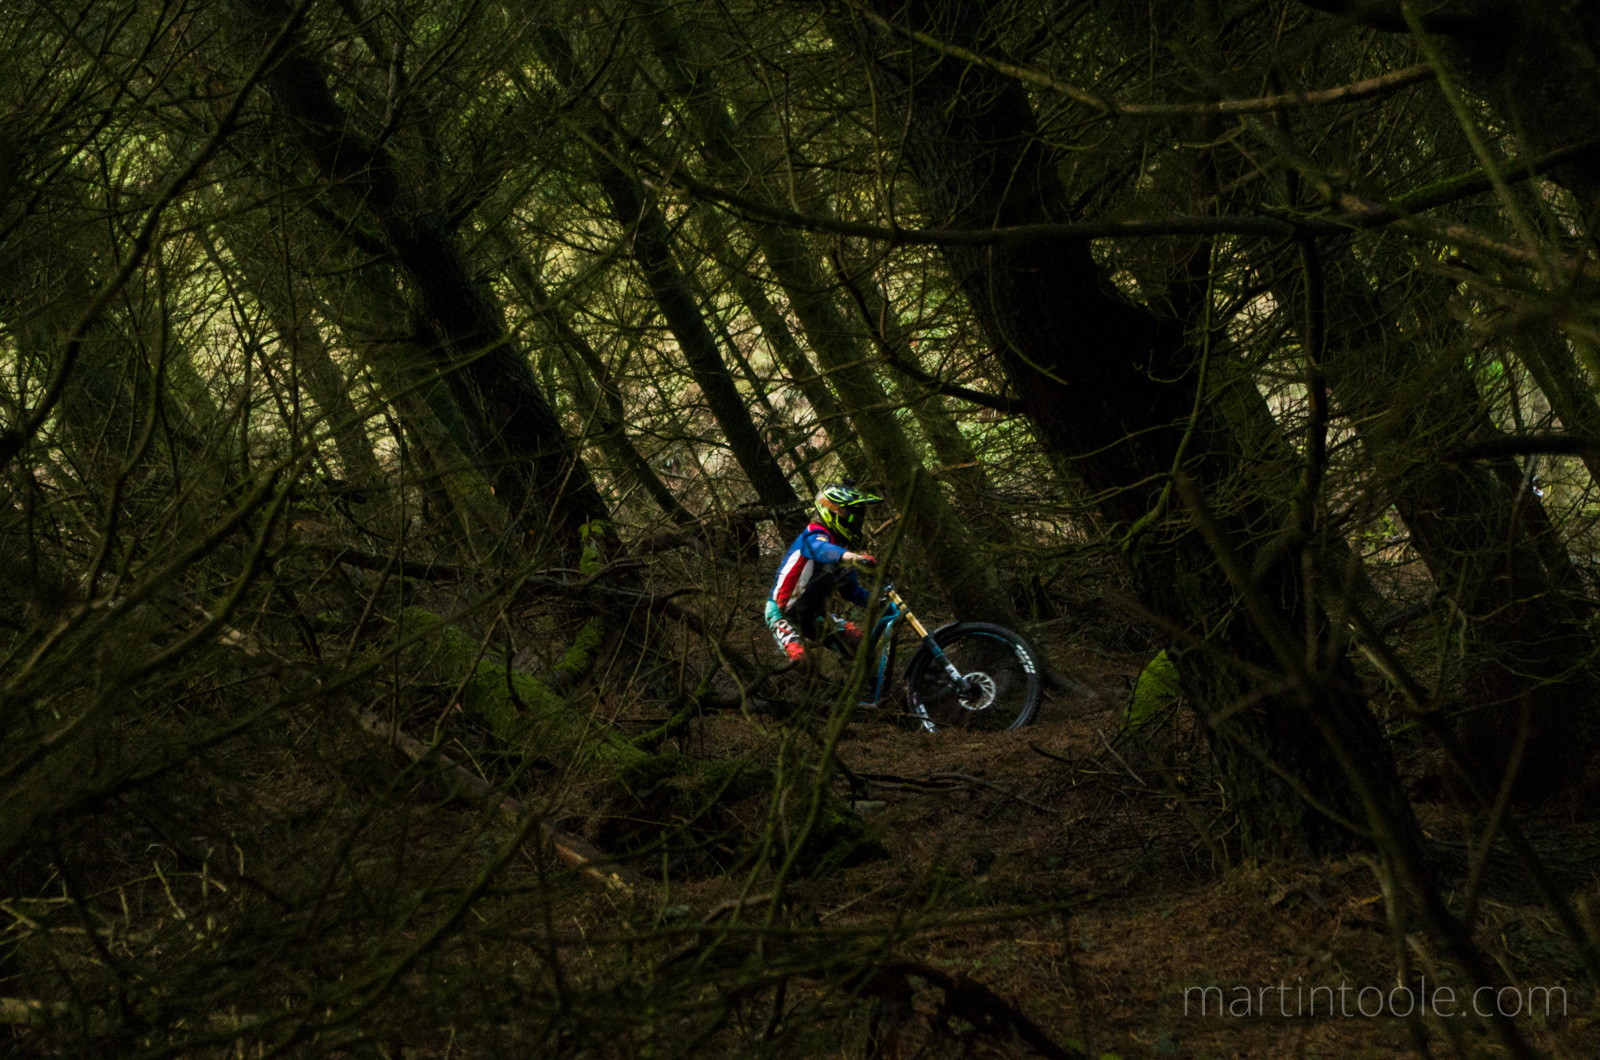 mountain biker on the nant gwrtheyn downhill mountain bike track in the trees